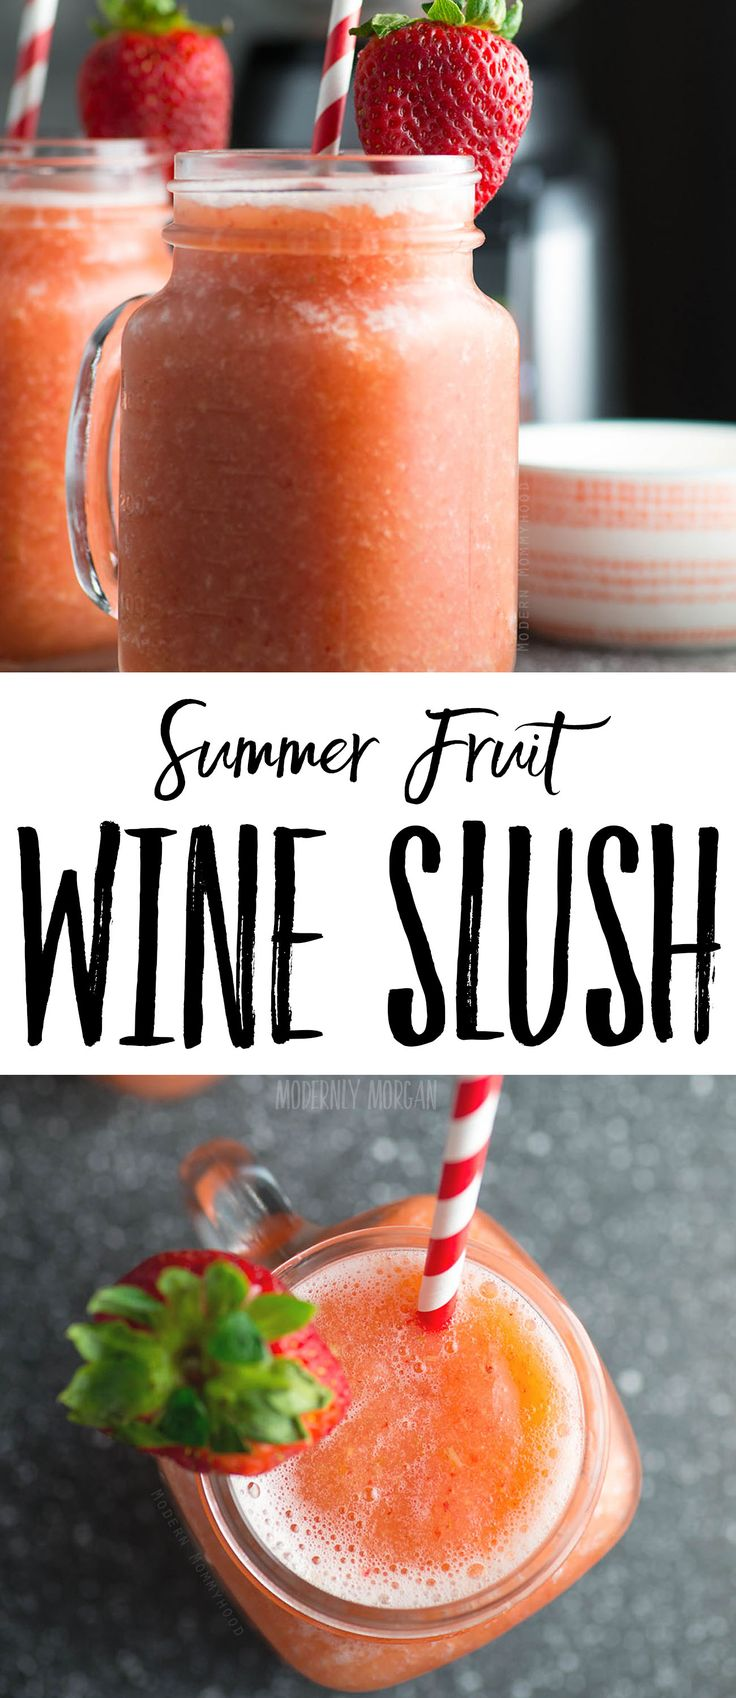 Summer Fruit Wine Slush Recipe - a frozen blend of peaches, strawberries, grapes and delicious white wine make an absolutely refreshing summer drink!